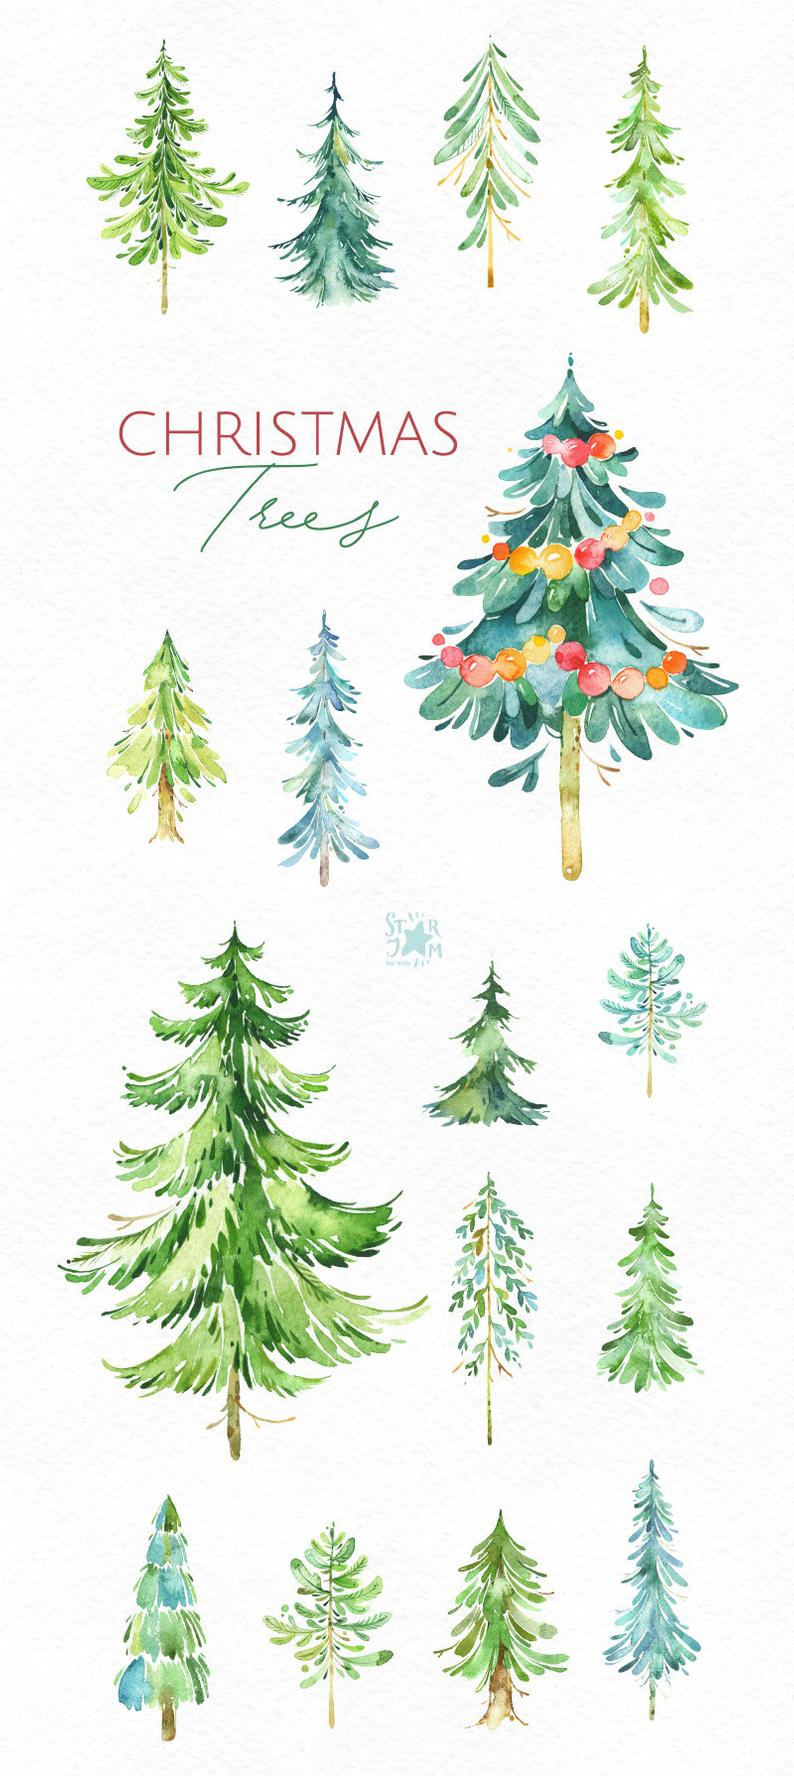 Christmas Trees 2 16 Watercolor Holiday Clipart Winter Etsy Christmas Tree Drawing Watercolor Christmas Cards Christmas Tree Painting